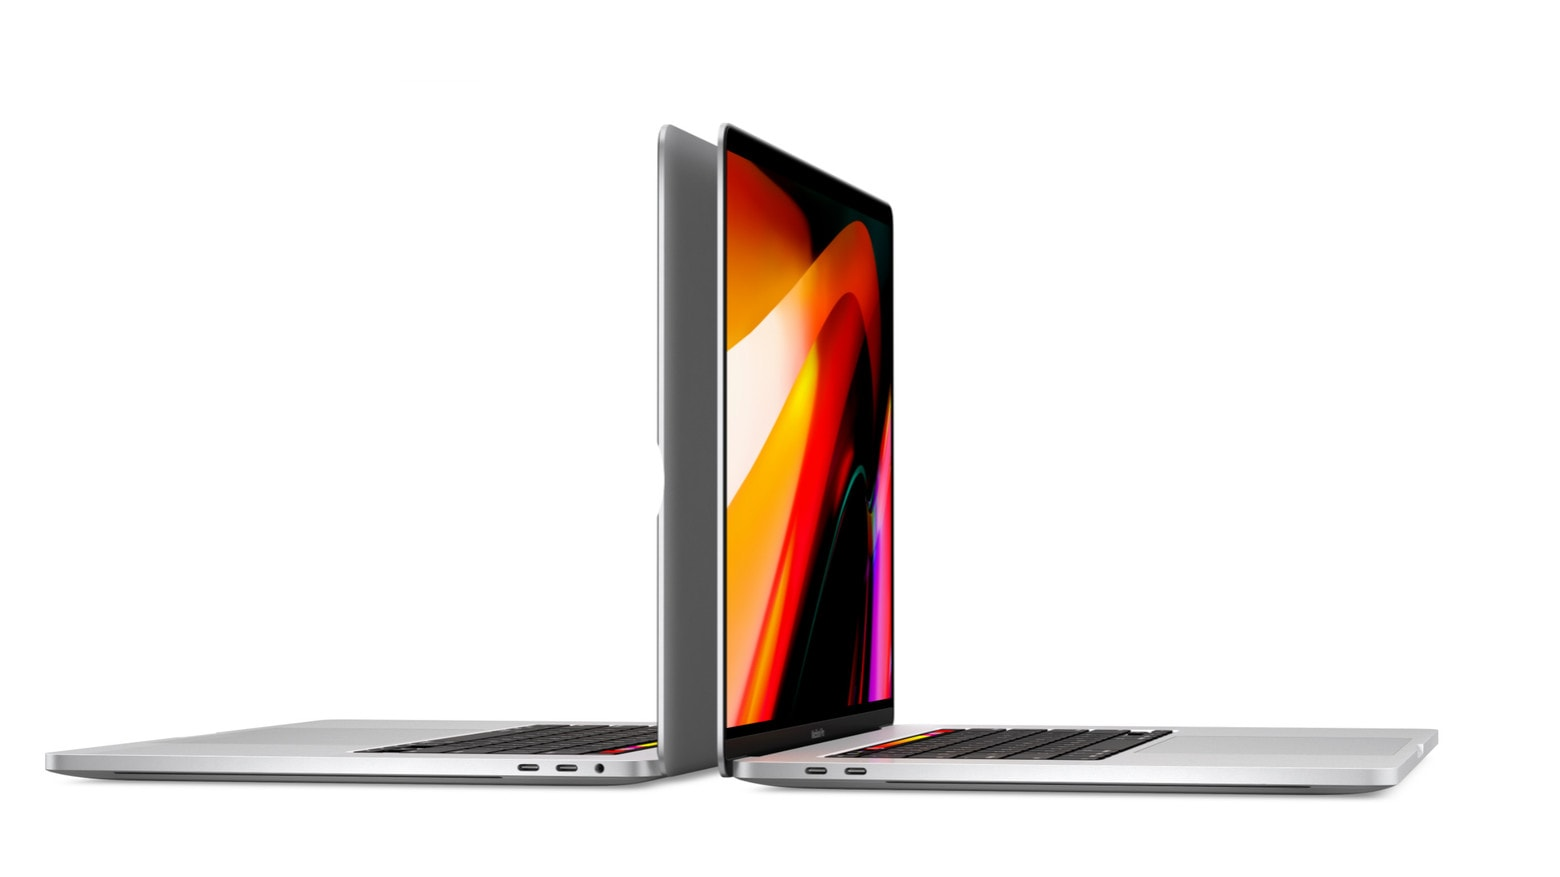 The 16-inch MacBook Pro isn't quite as svelte as it could be.